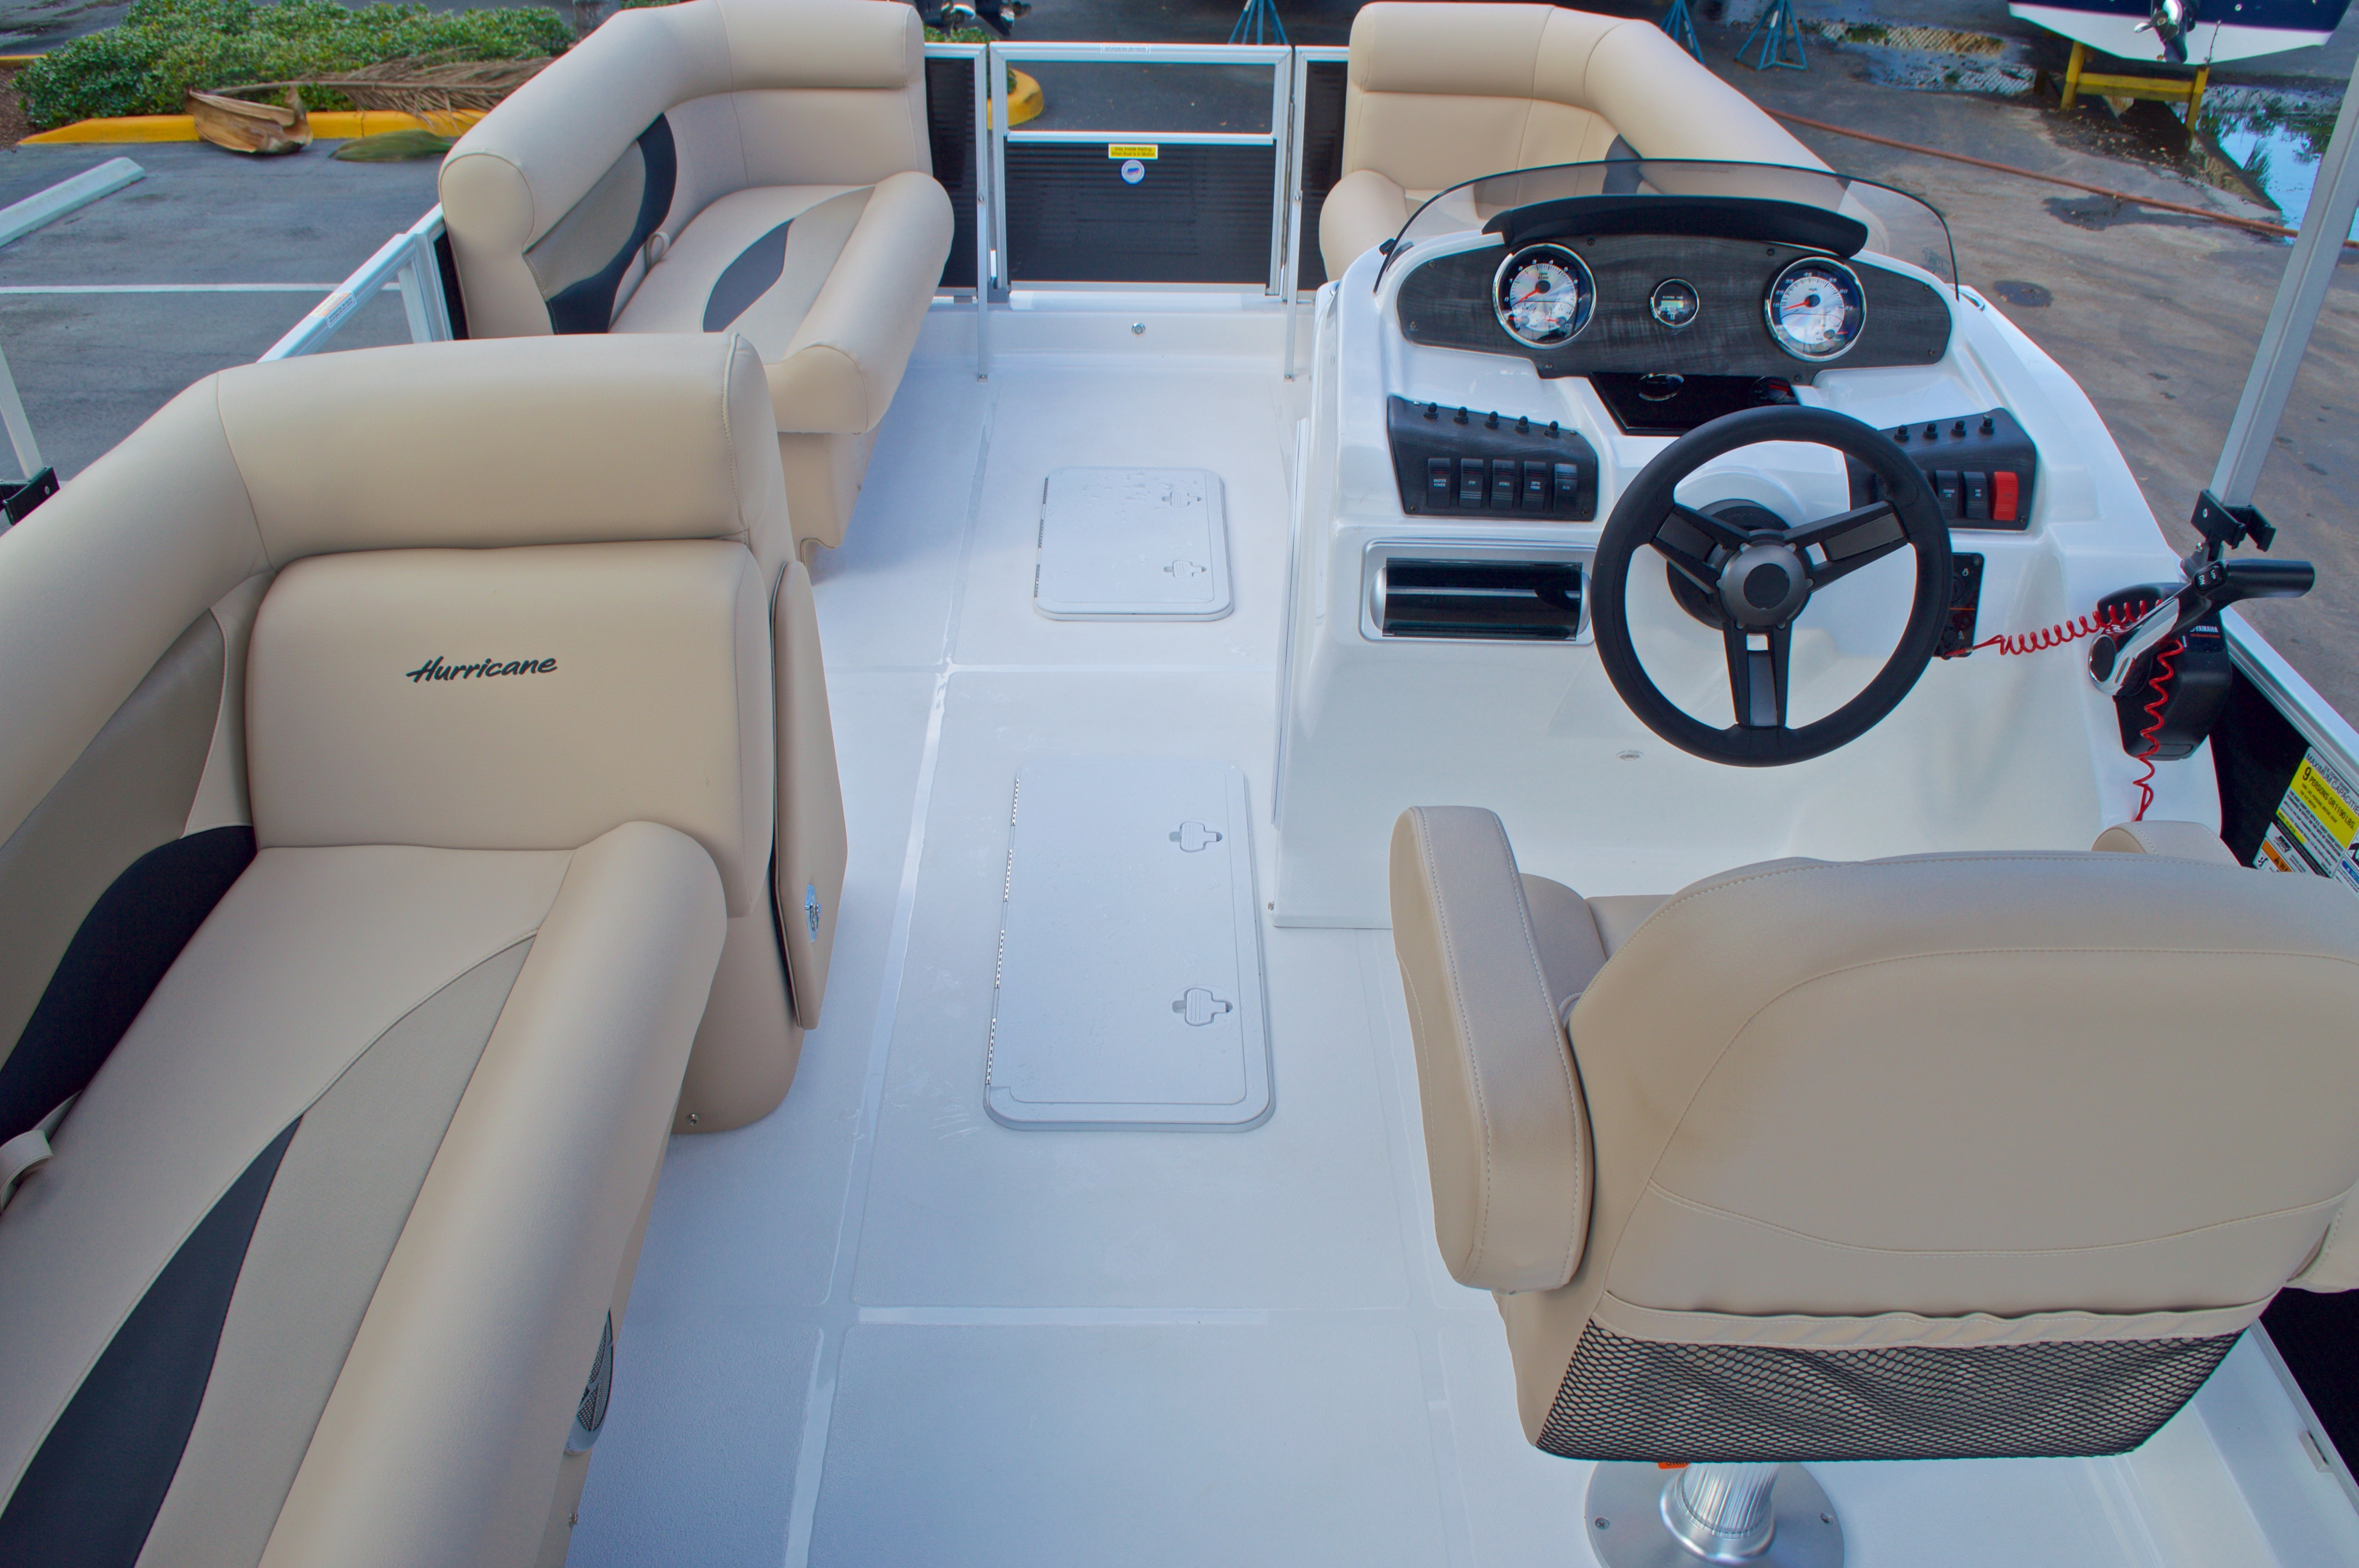 Thumbnail 10 for New 2016 Hurricane Fundeck FD 196 OB boat for sale in West Palm Beach, FL